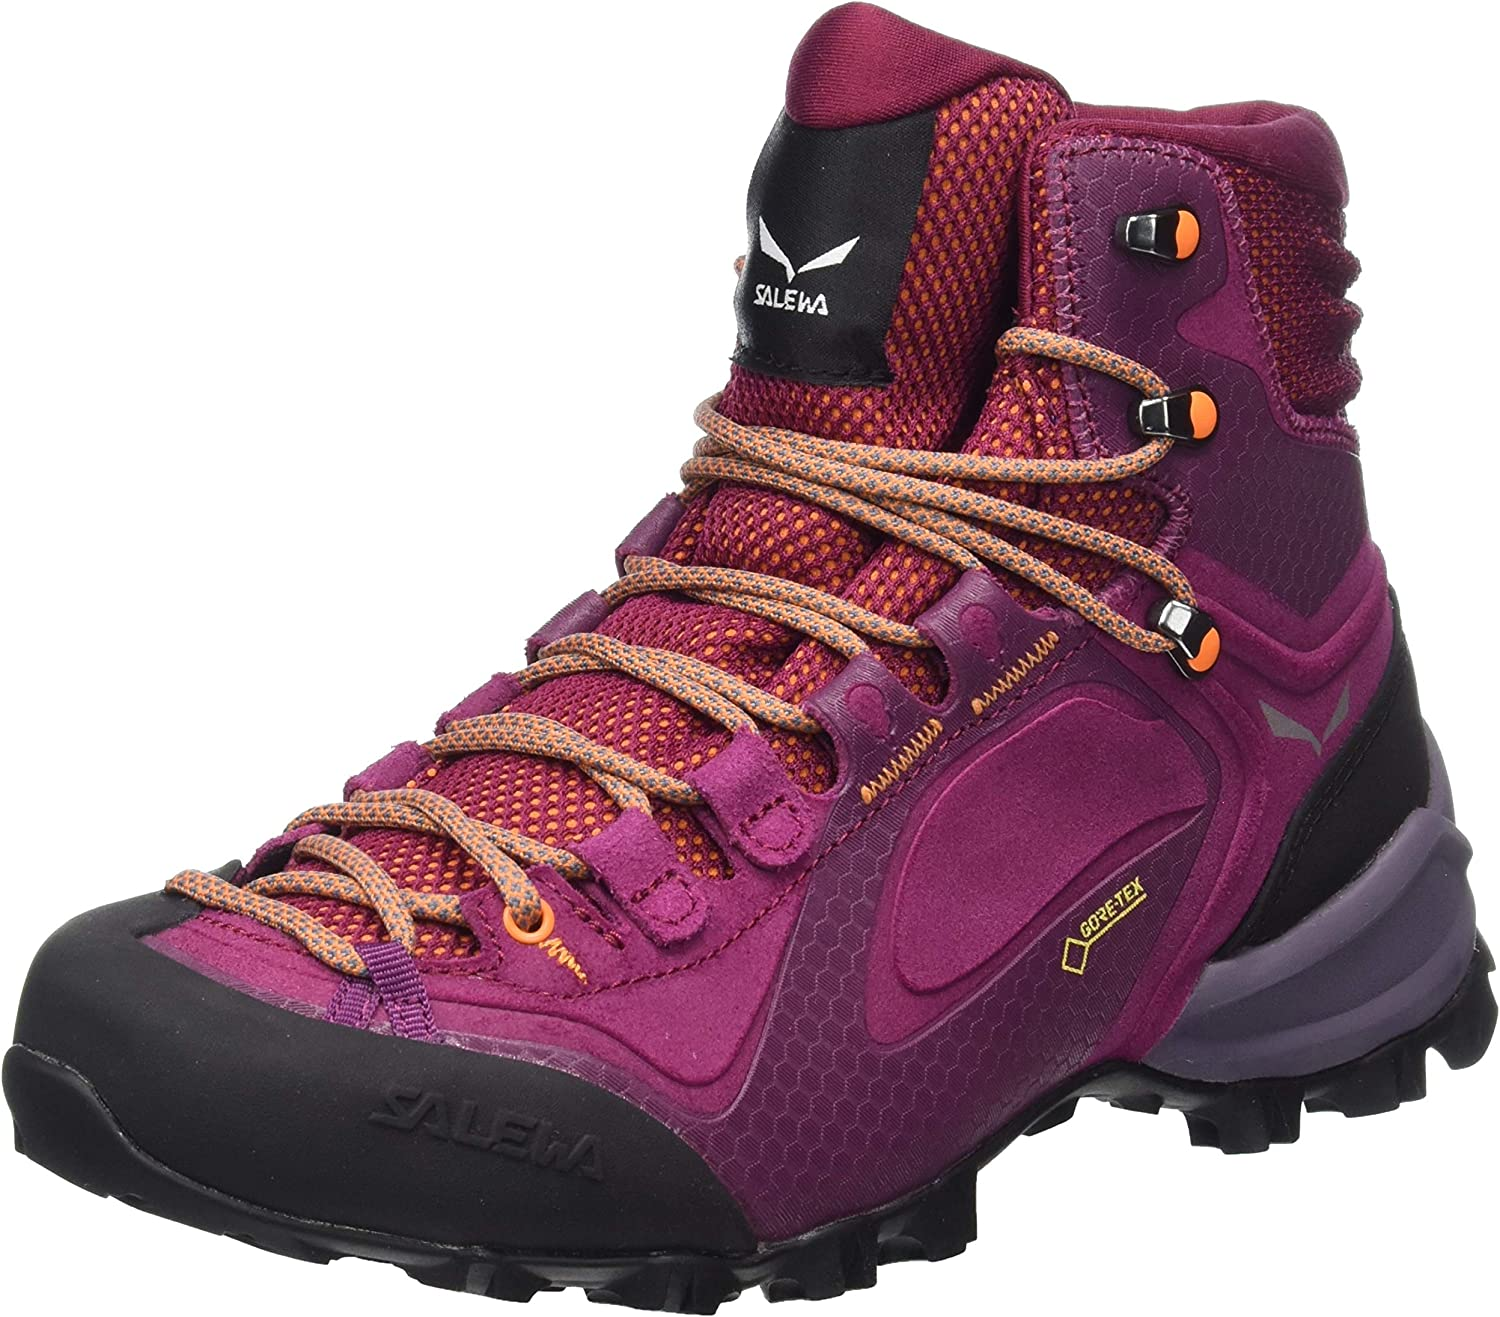 Salewa Women s High Rise Hiking Boots, Ombre Blue Fluo Coral, 6.5 us